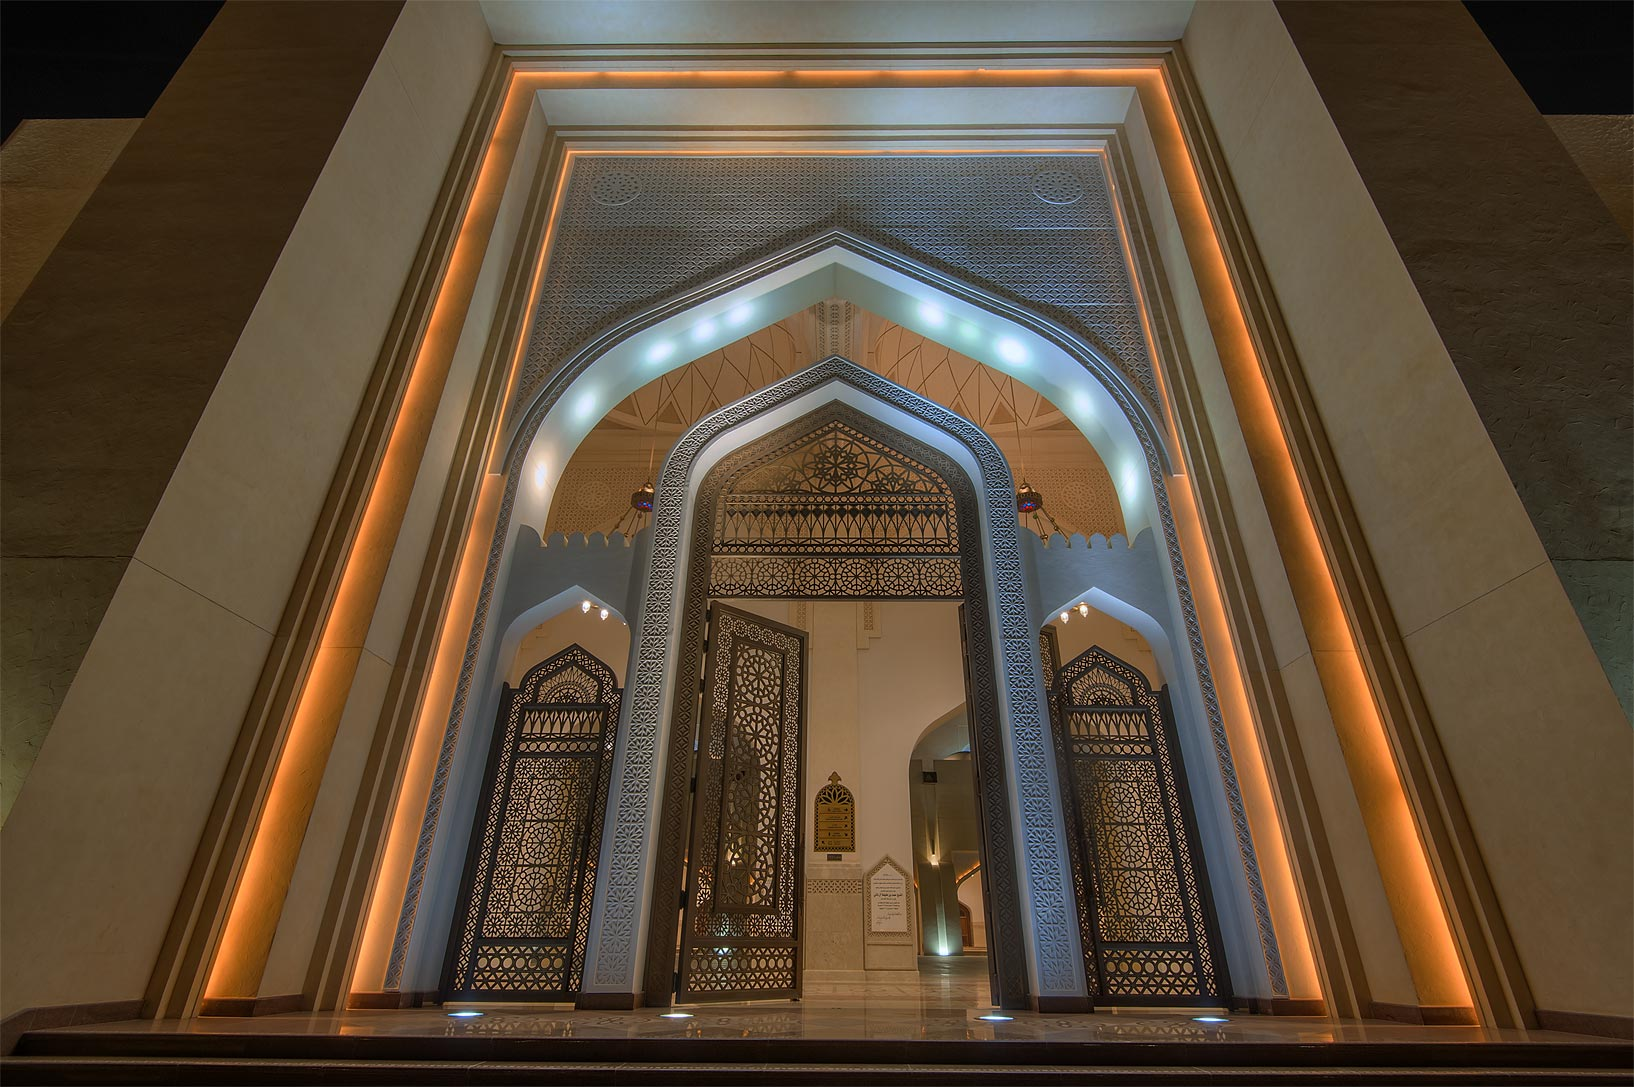 Women's entrance of State Mosque (Sheikh Muhammad Ibn Abdul Wahhab Mosque). Doha, Qatar